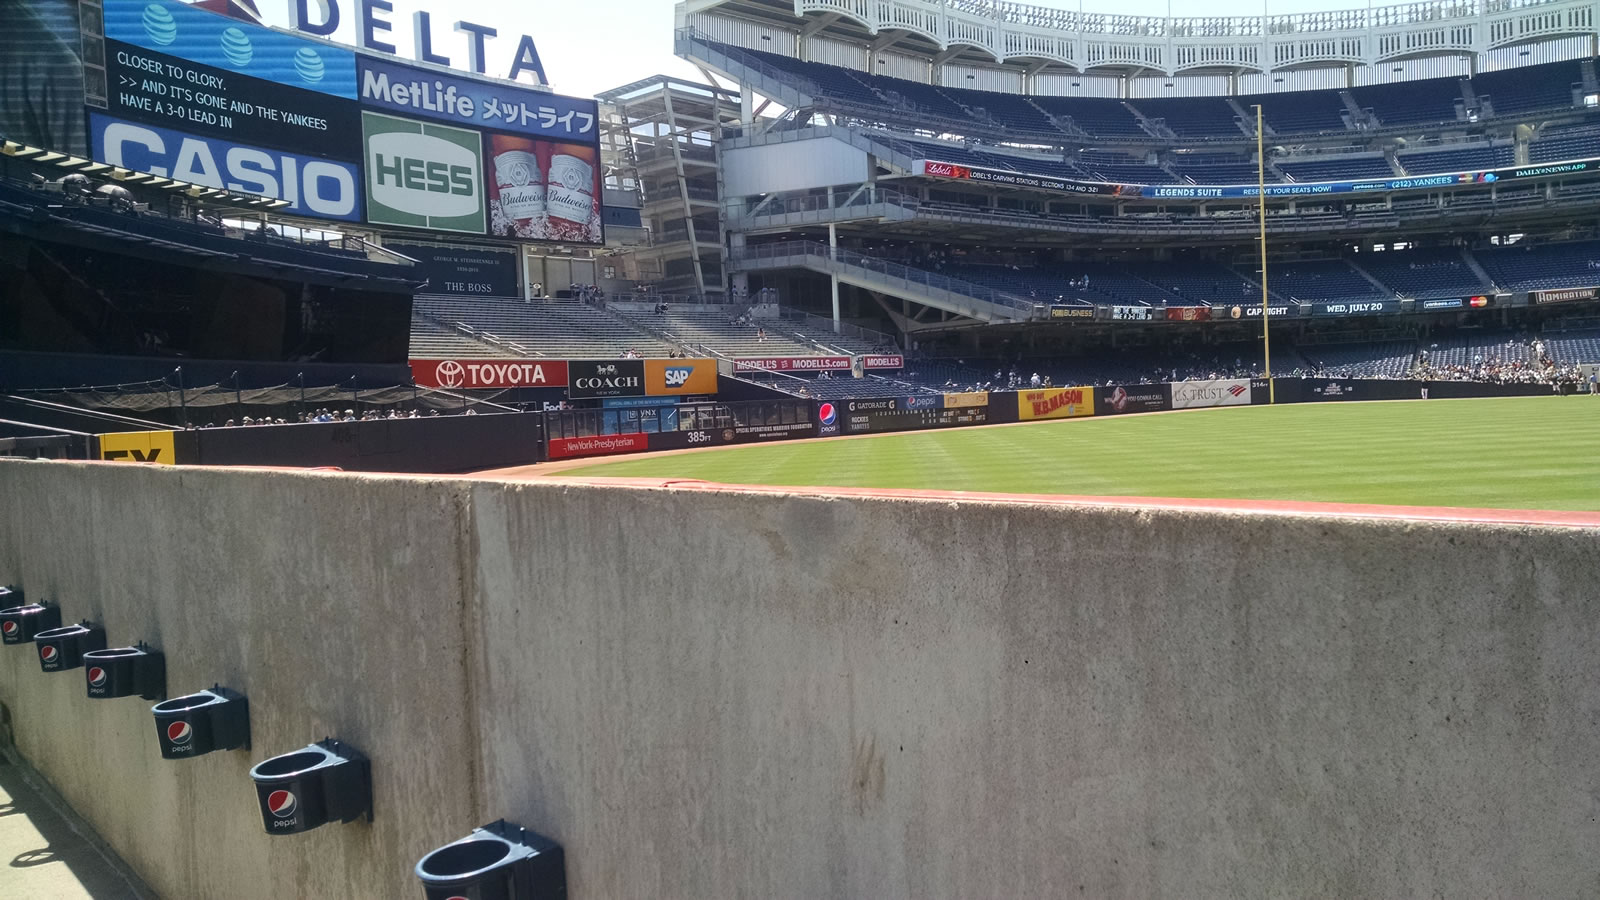 New York Yankees Seat View for Yankee Stadium Section 136, Row 1, Seat 11